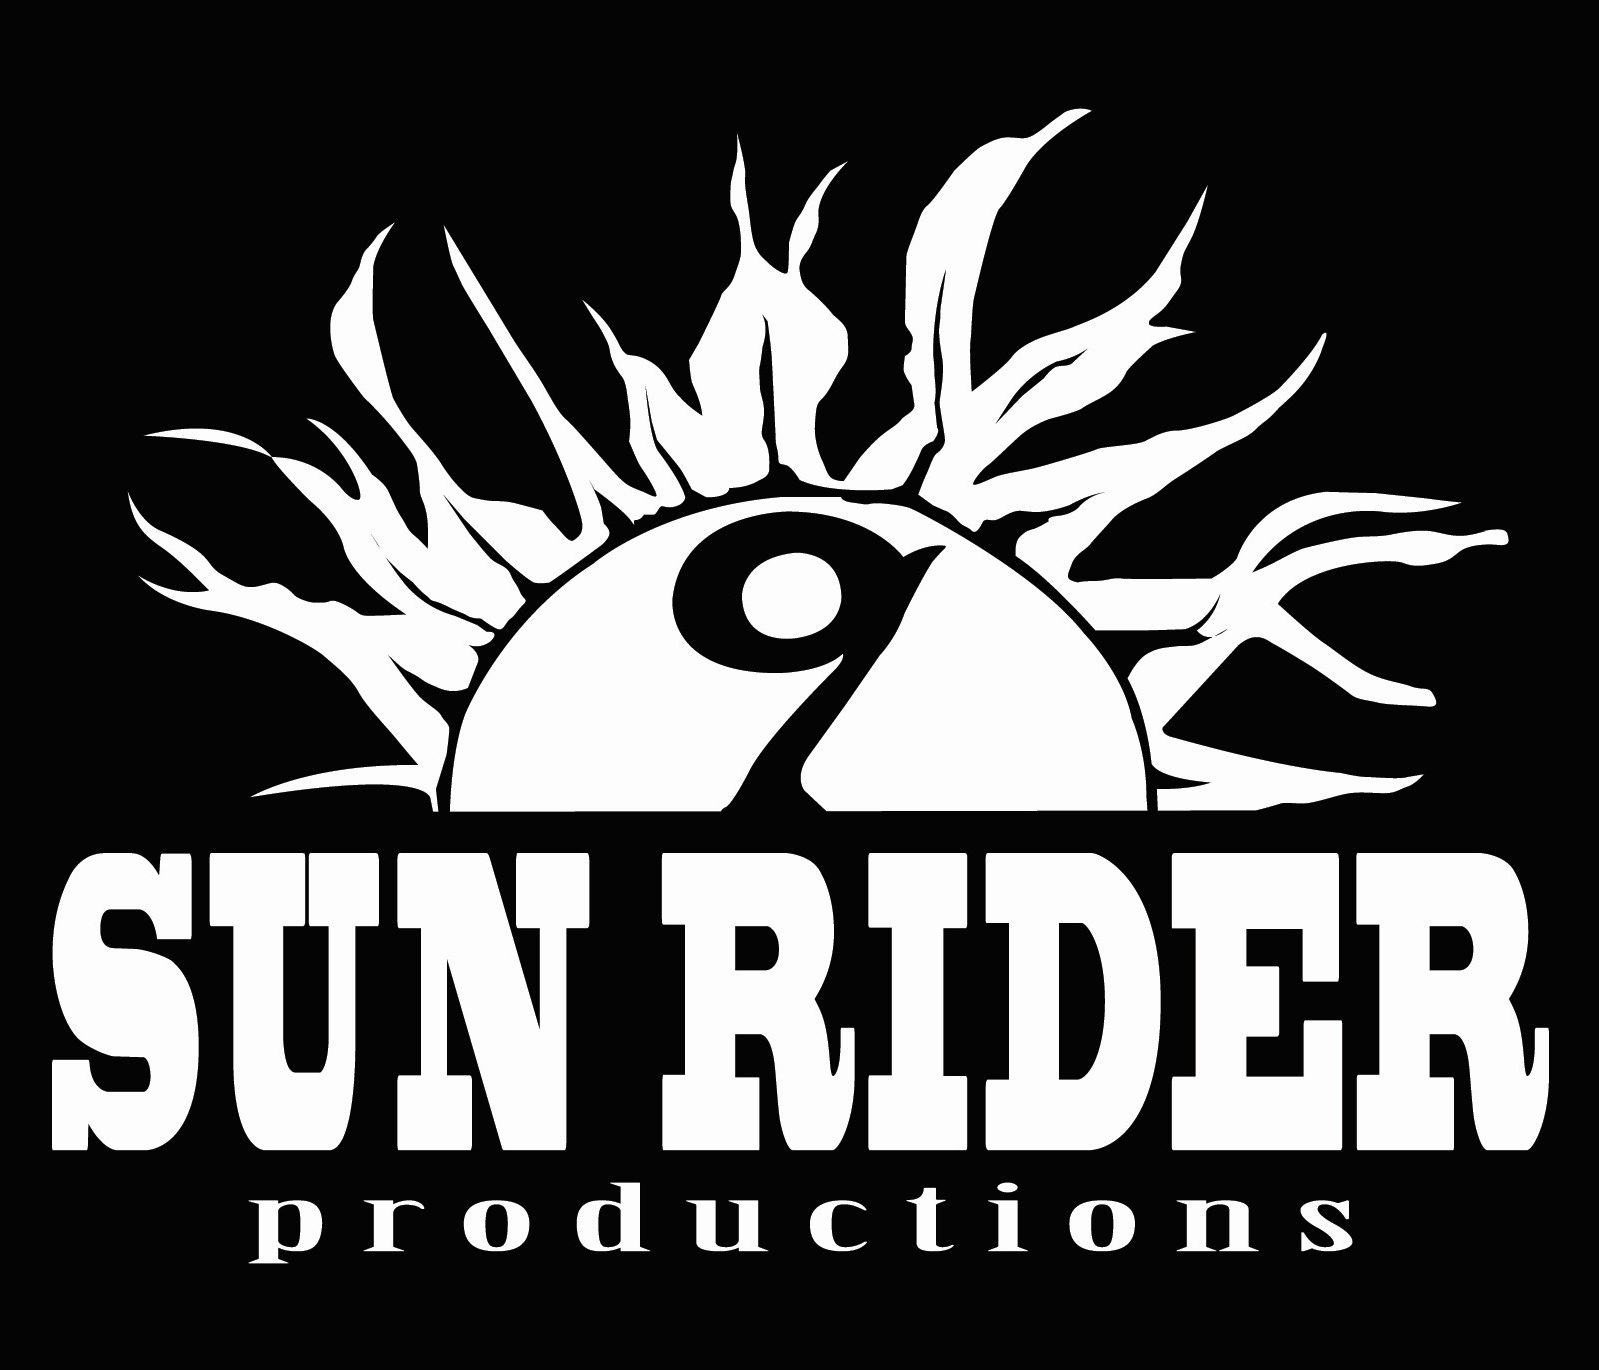 Sun Rider 9 Productions LLC